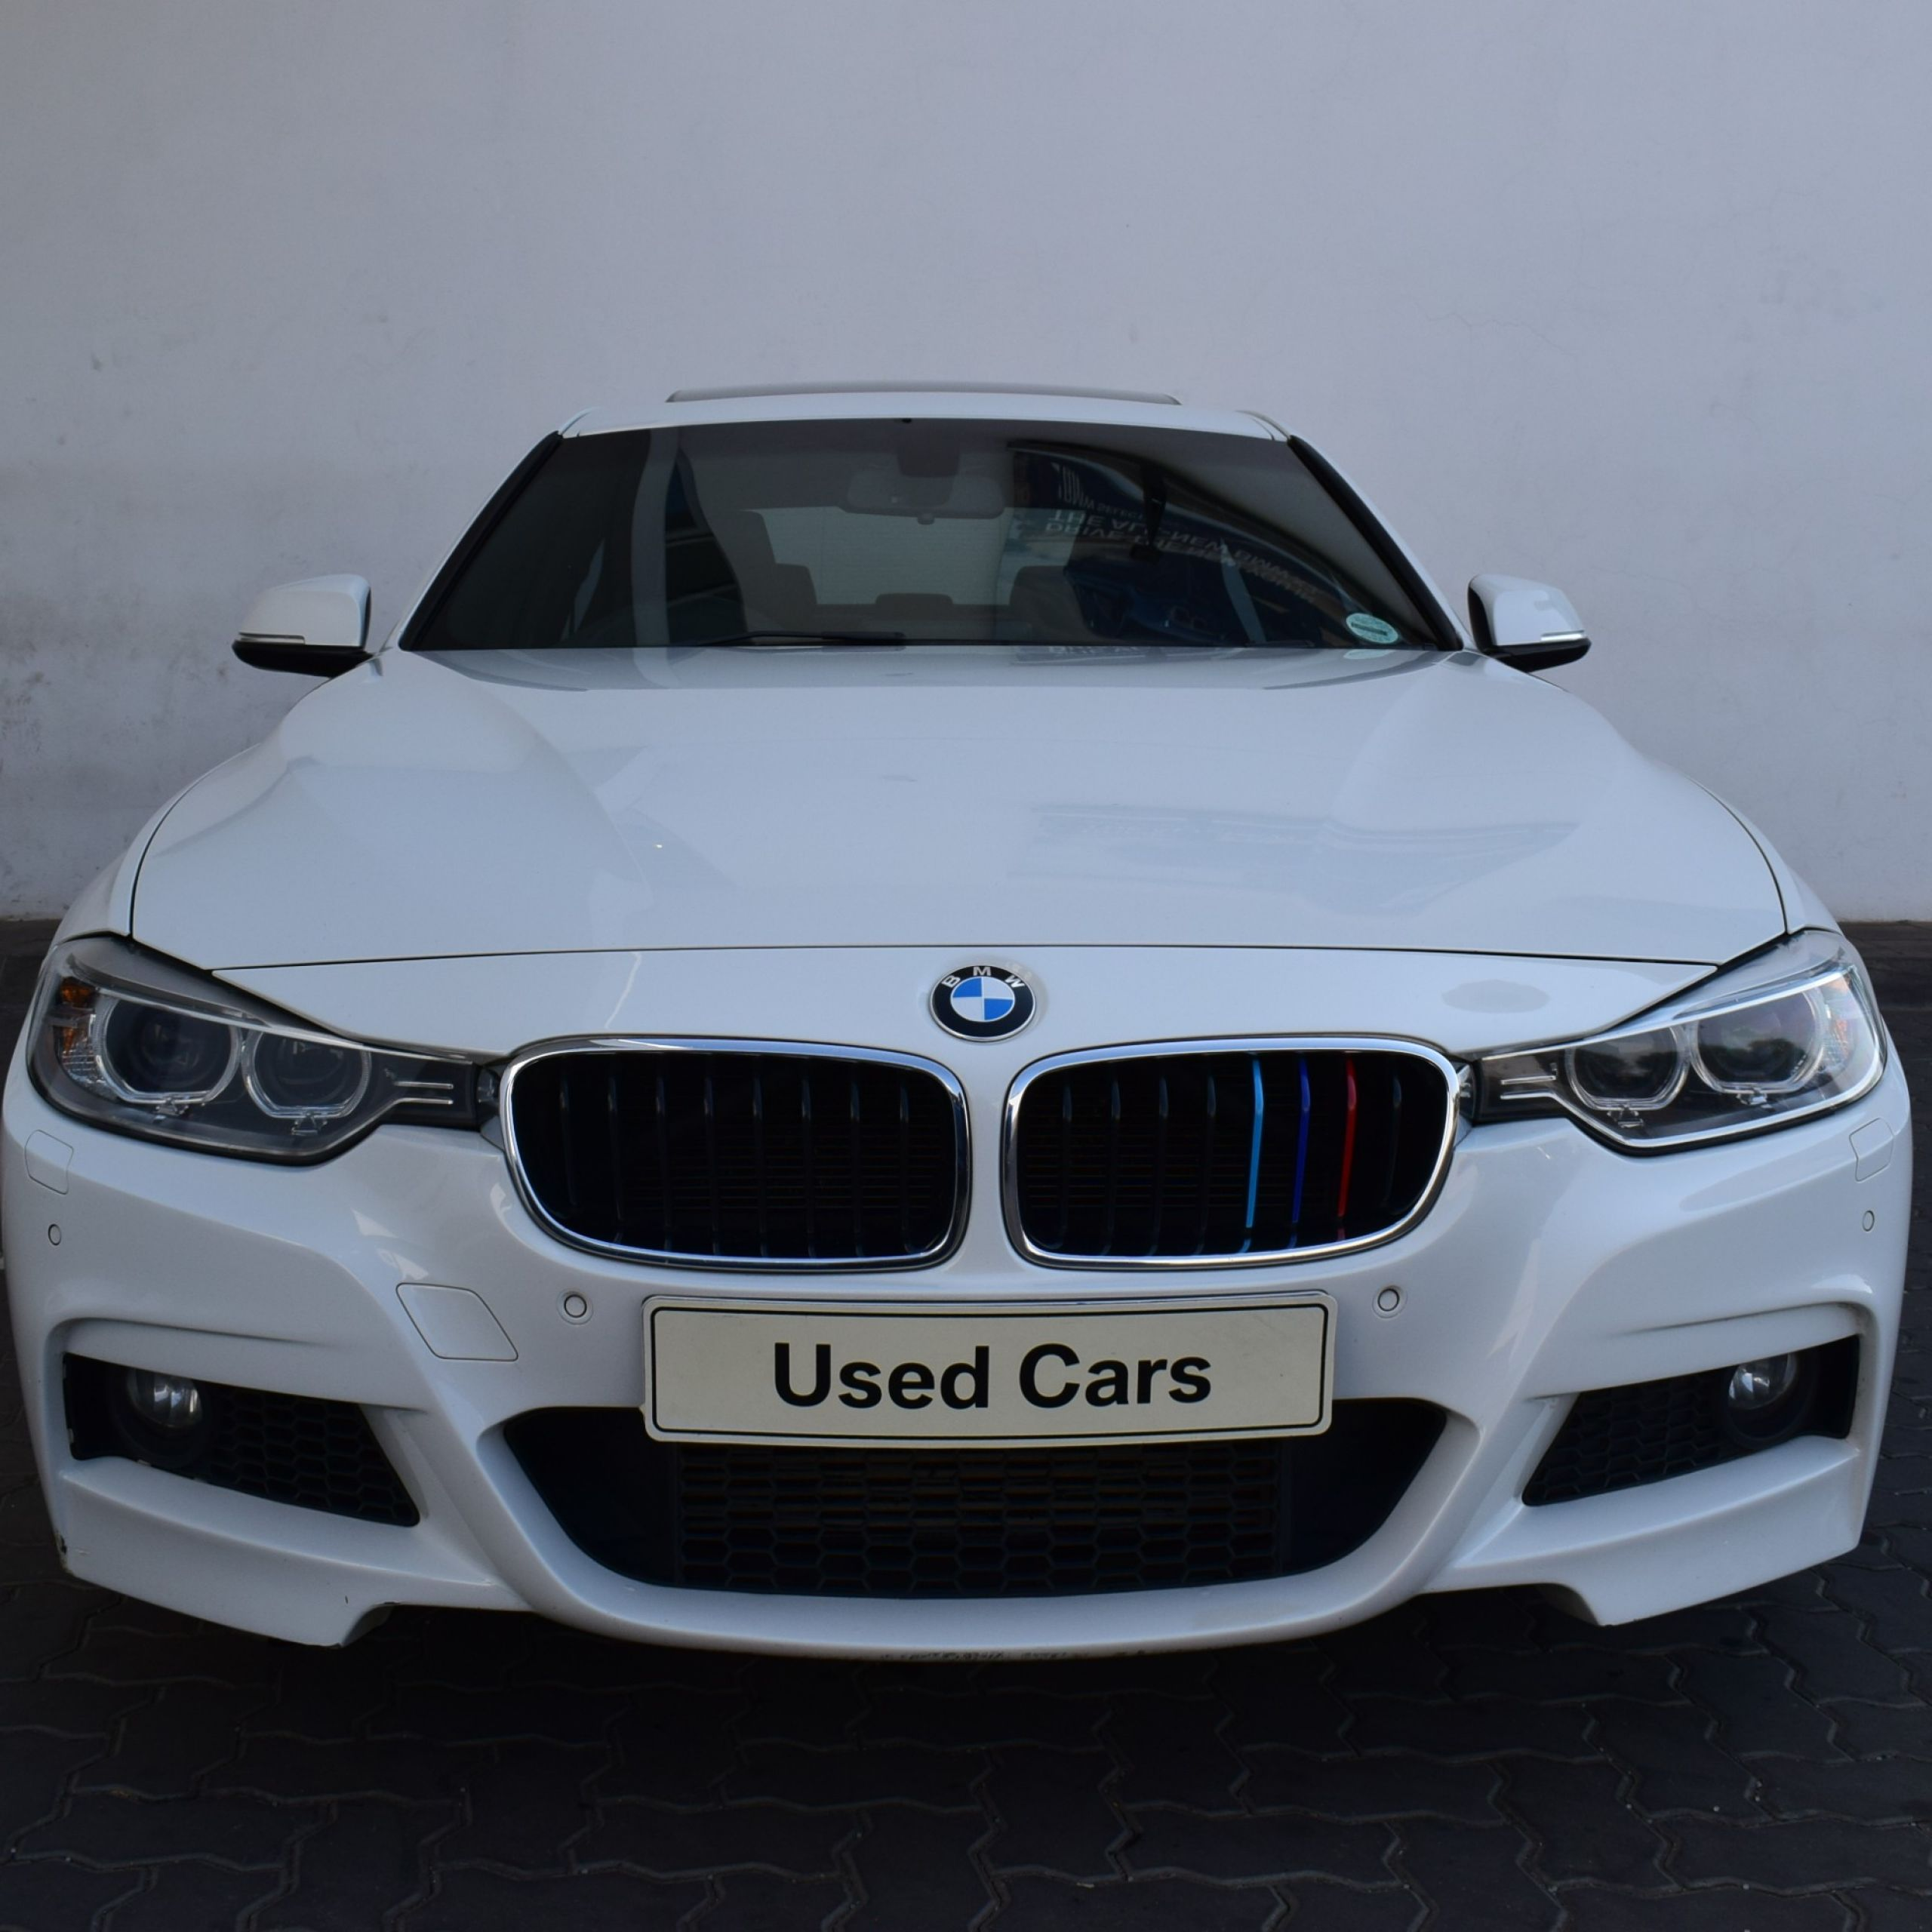 2015 Bmw 328i Fresh Listings Archive Page 7 Of 30 Vehicle Sellers